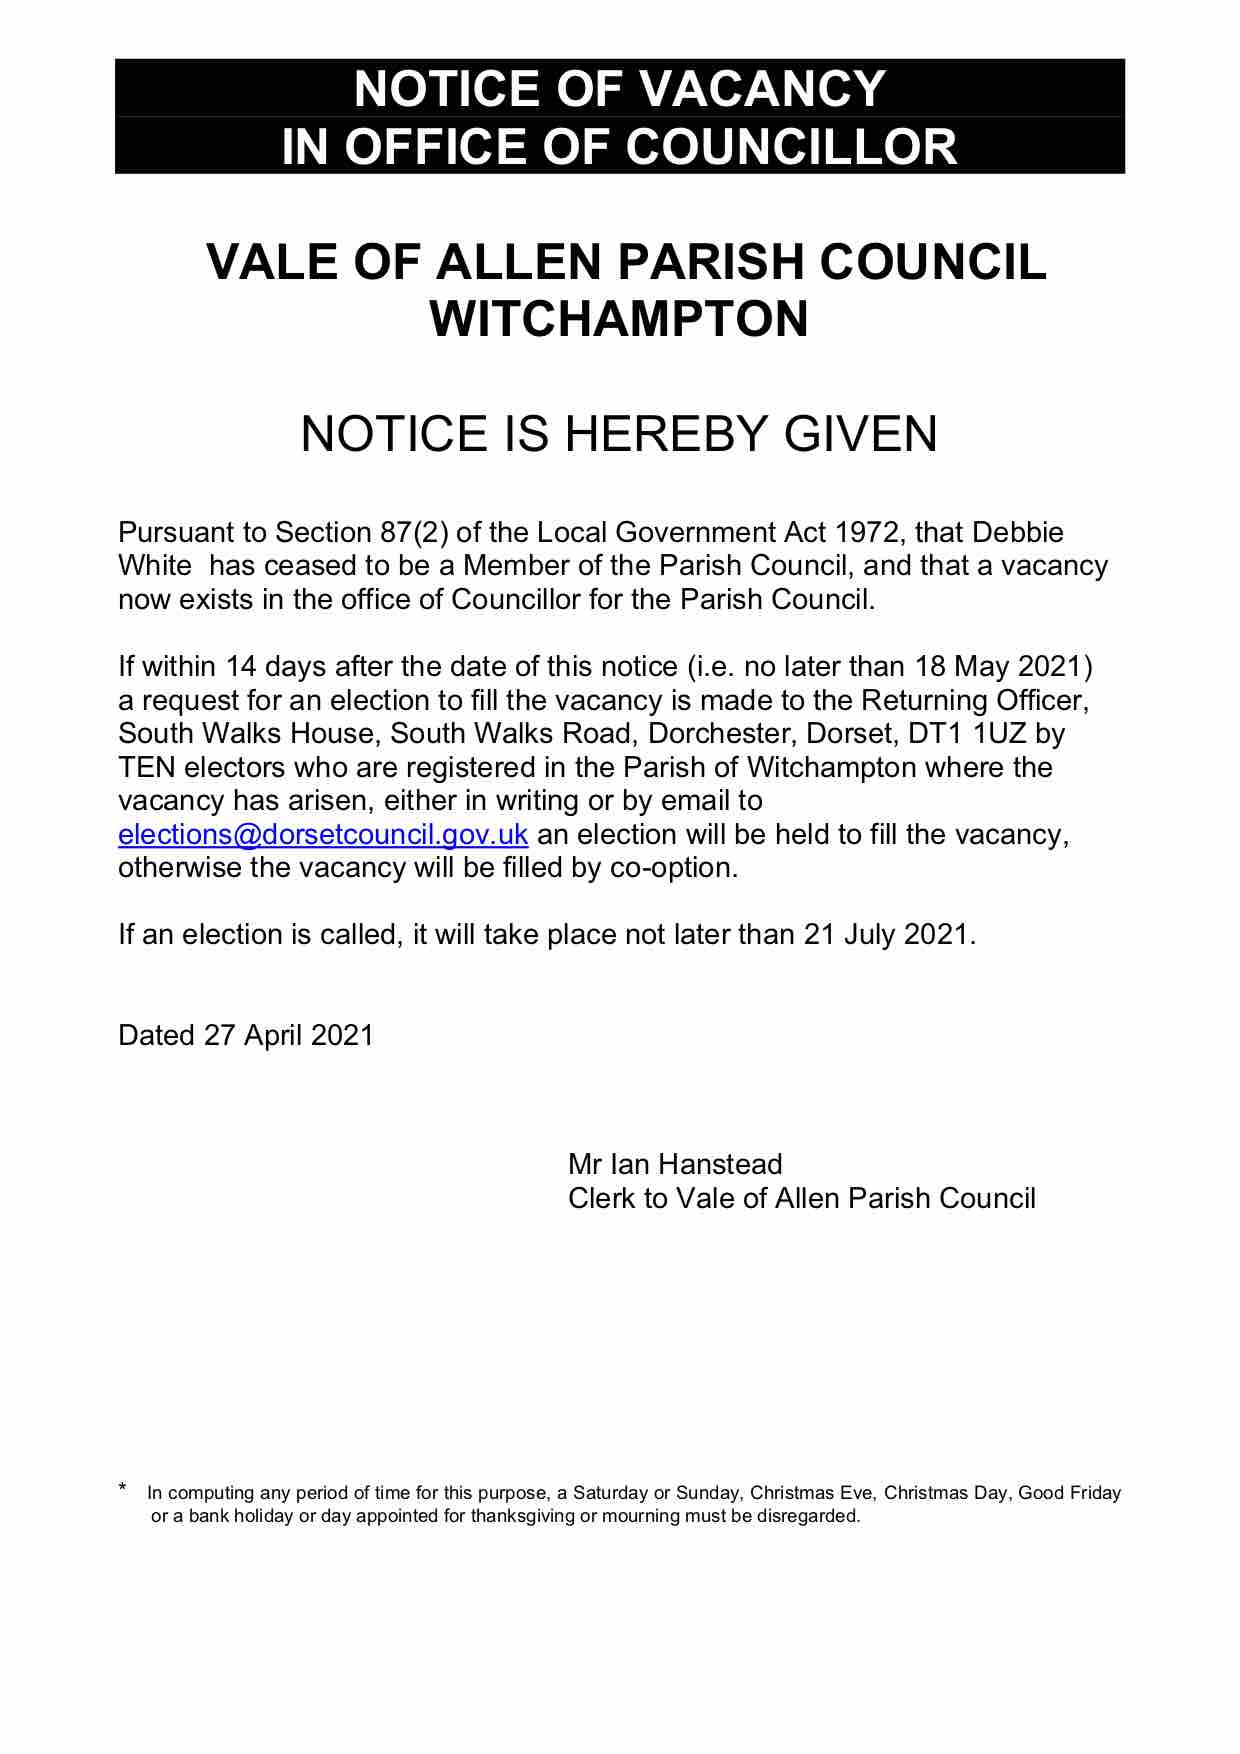 Image of Vacancy notice (text of which is available in PDF and text in the blog post)